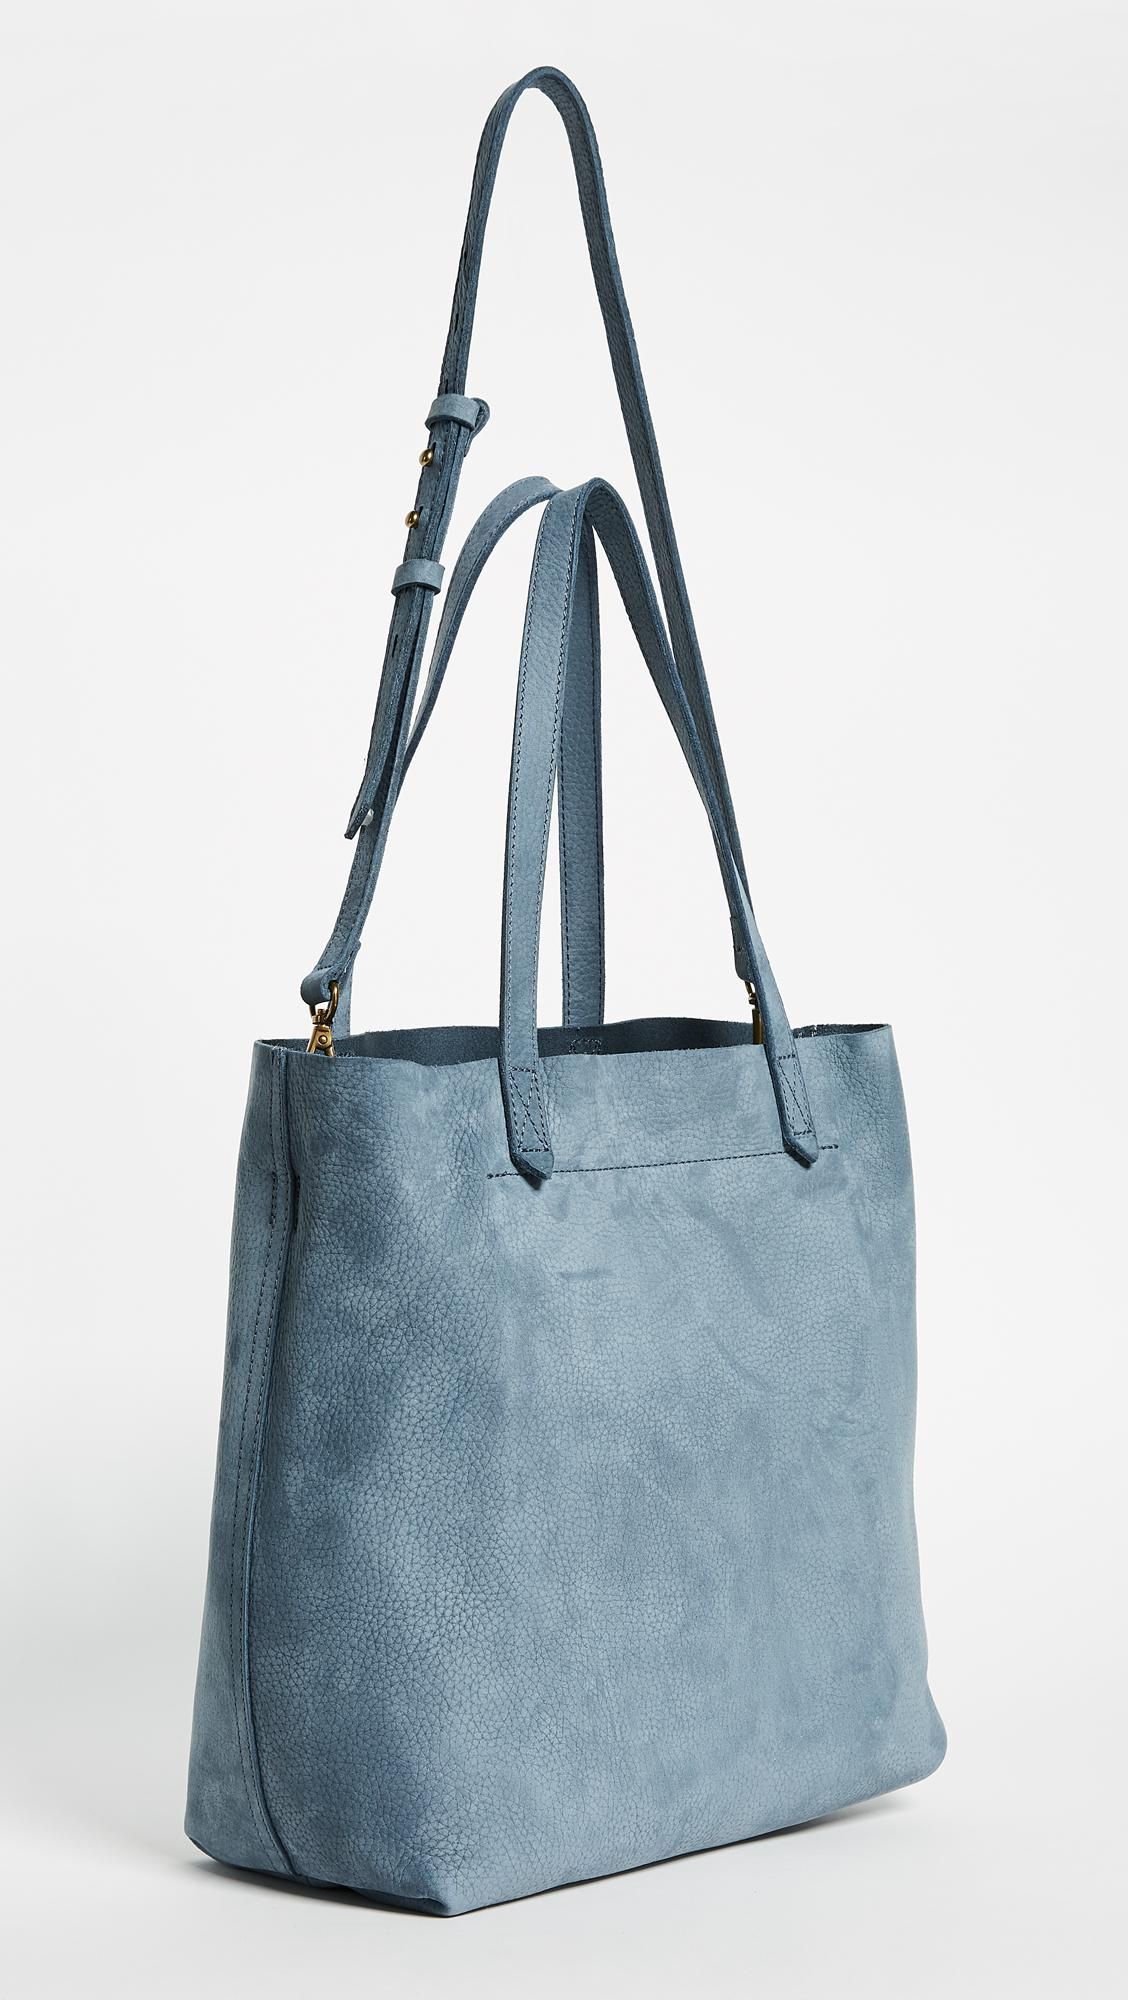 cab06d0be Madewell Medium Transport Tote In Nubuck in Blue - Lyst